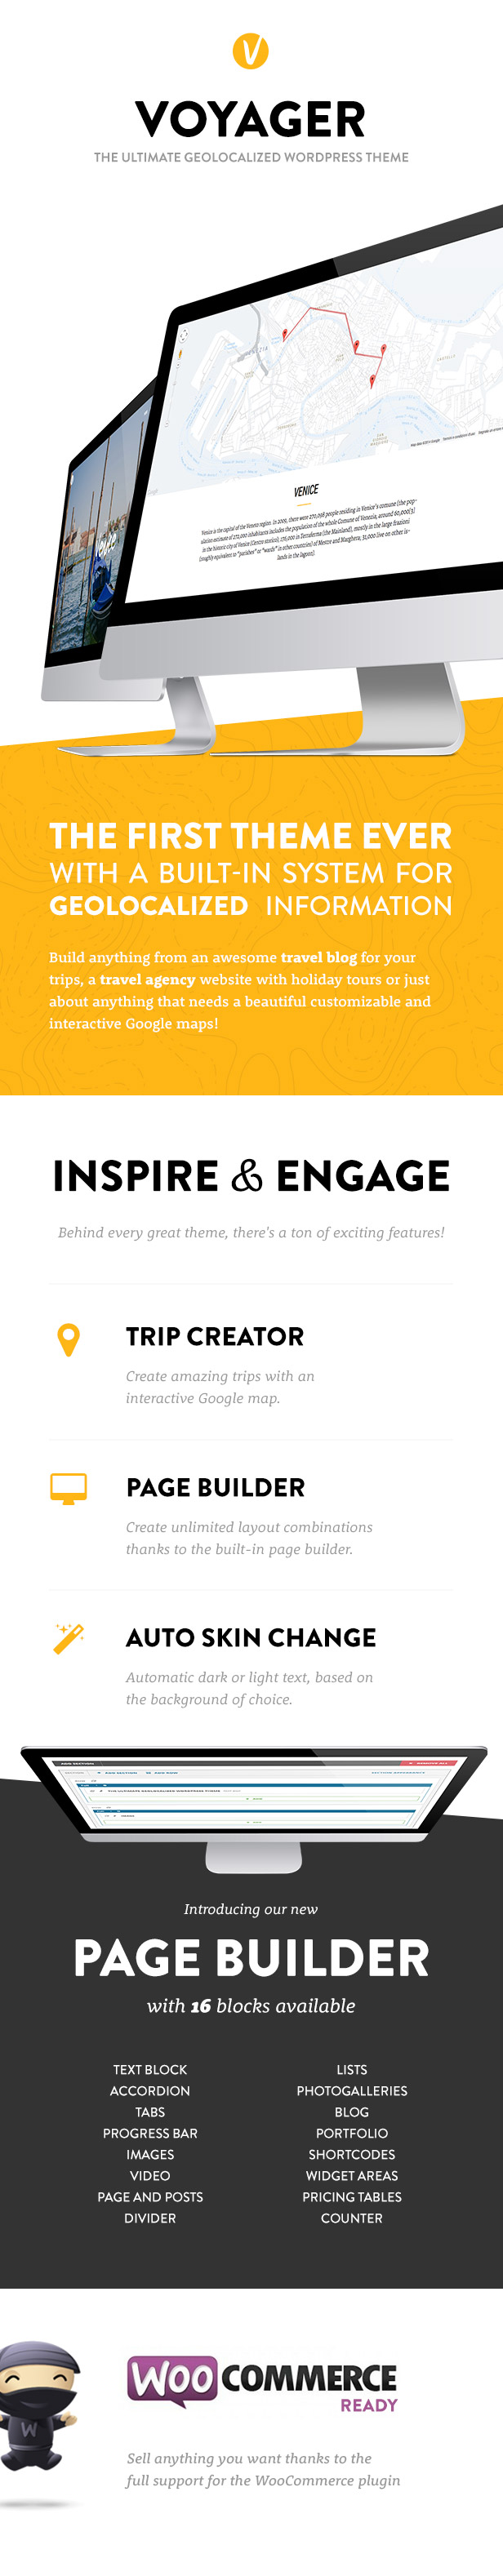 voyager promo - Voyager - The Geolocalized Multipurpose WP theme